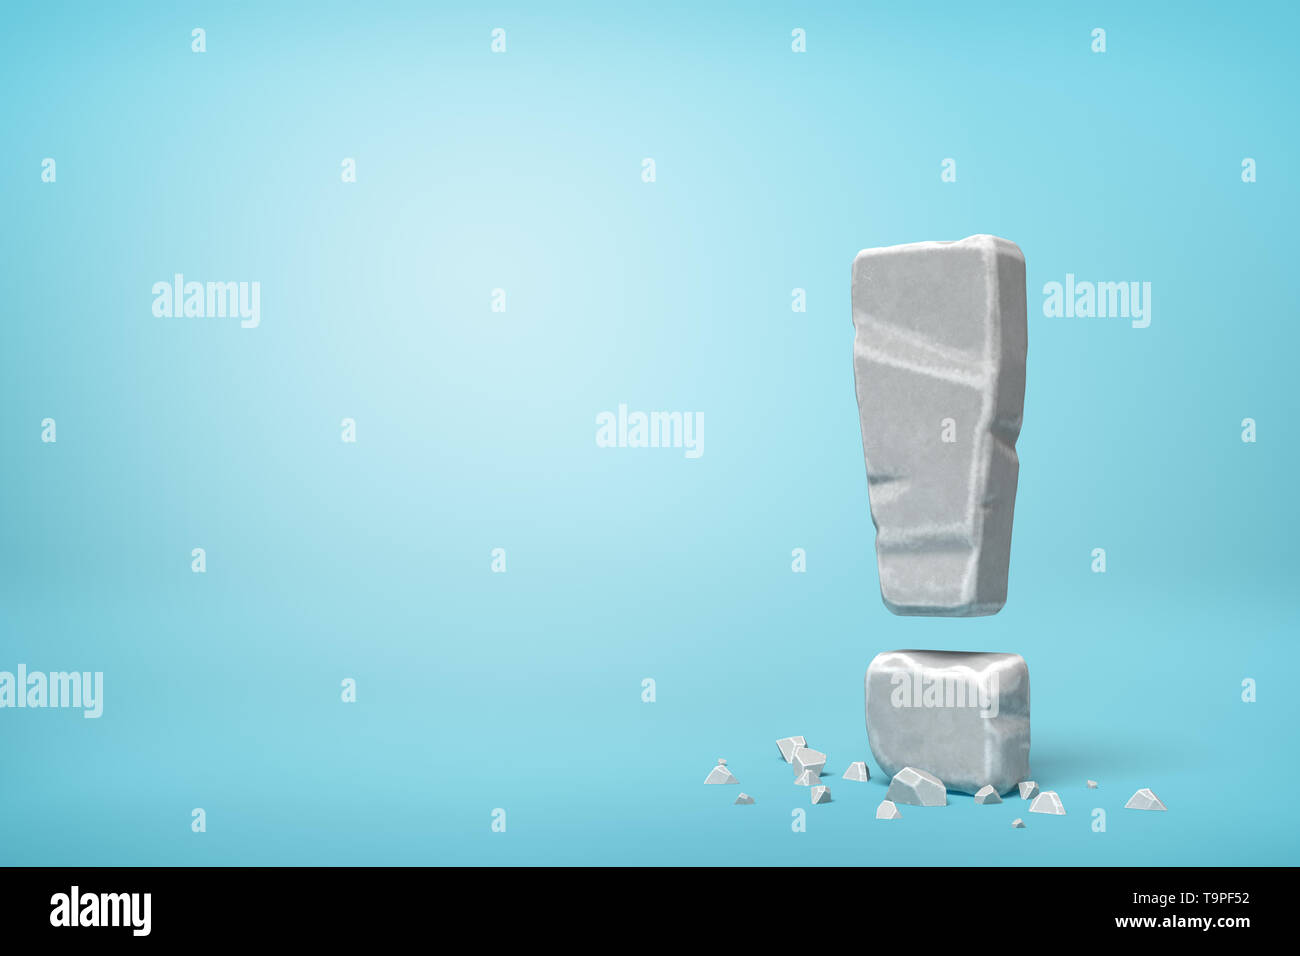 3d rendering of stone concrete exclamation mark on blue background - Stock Image